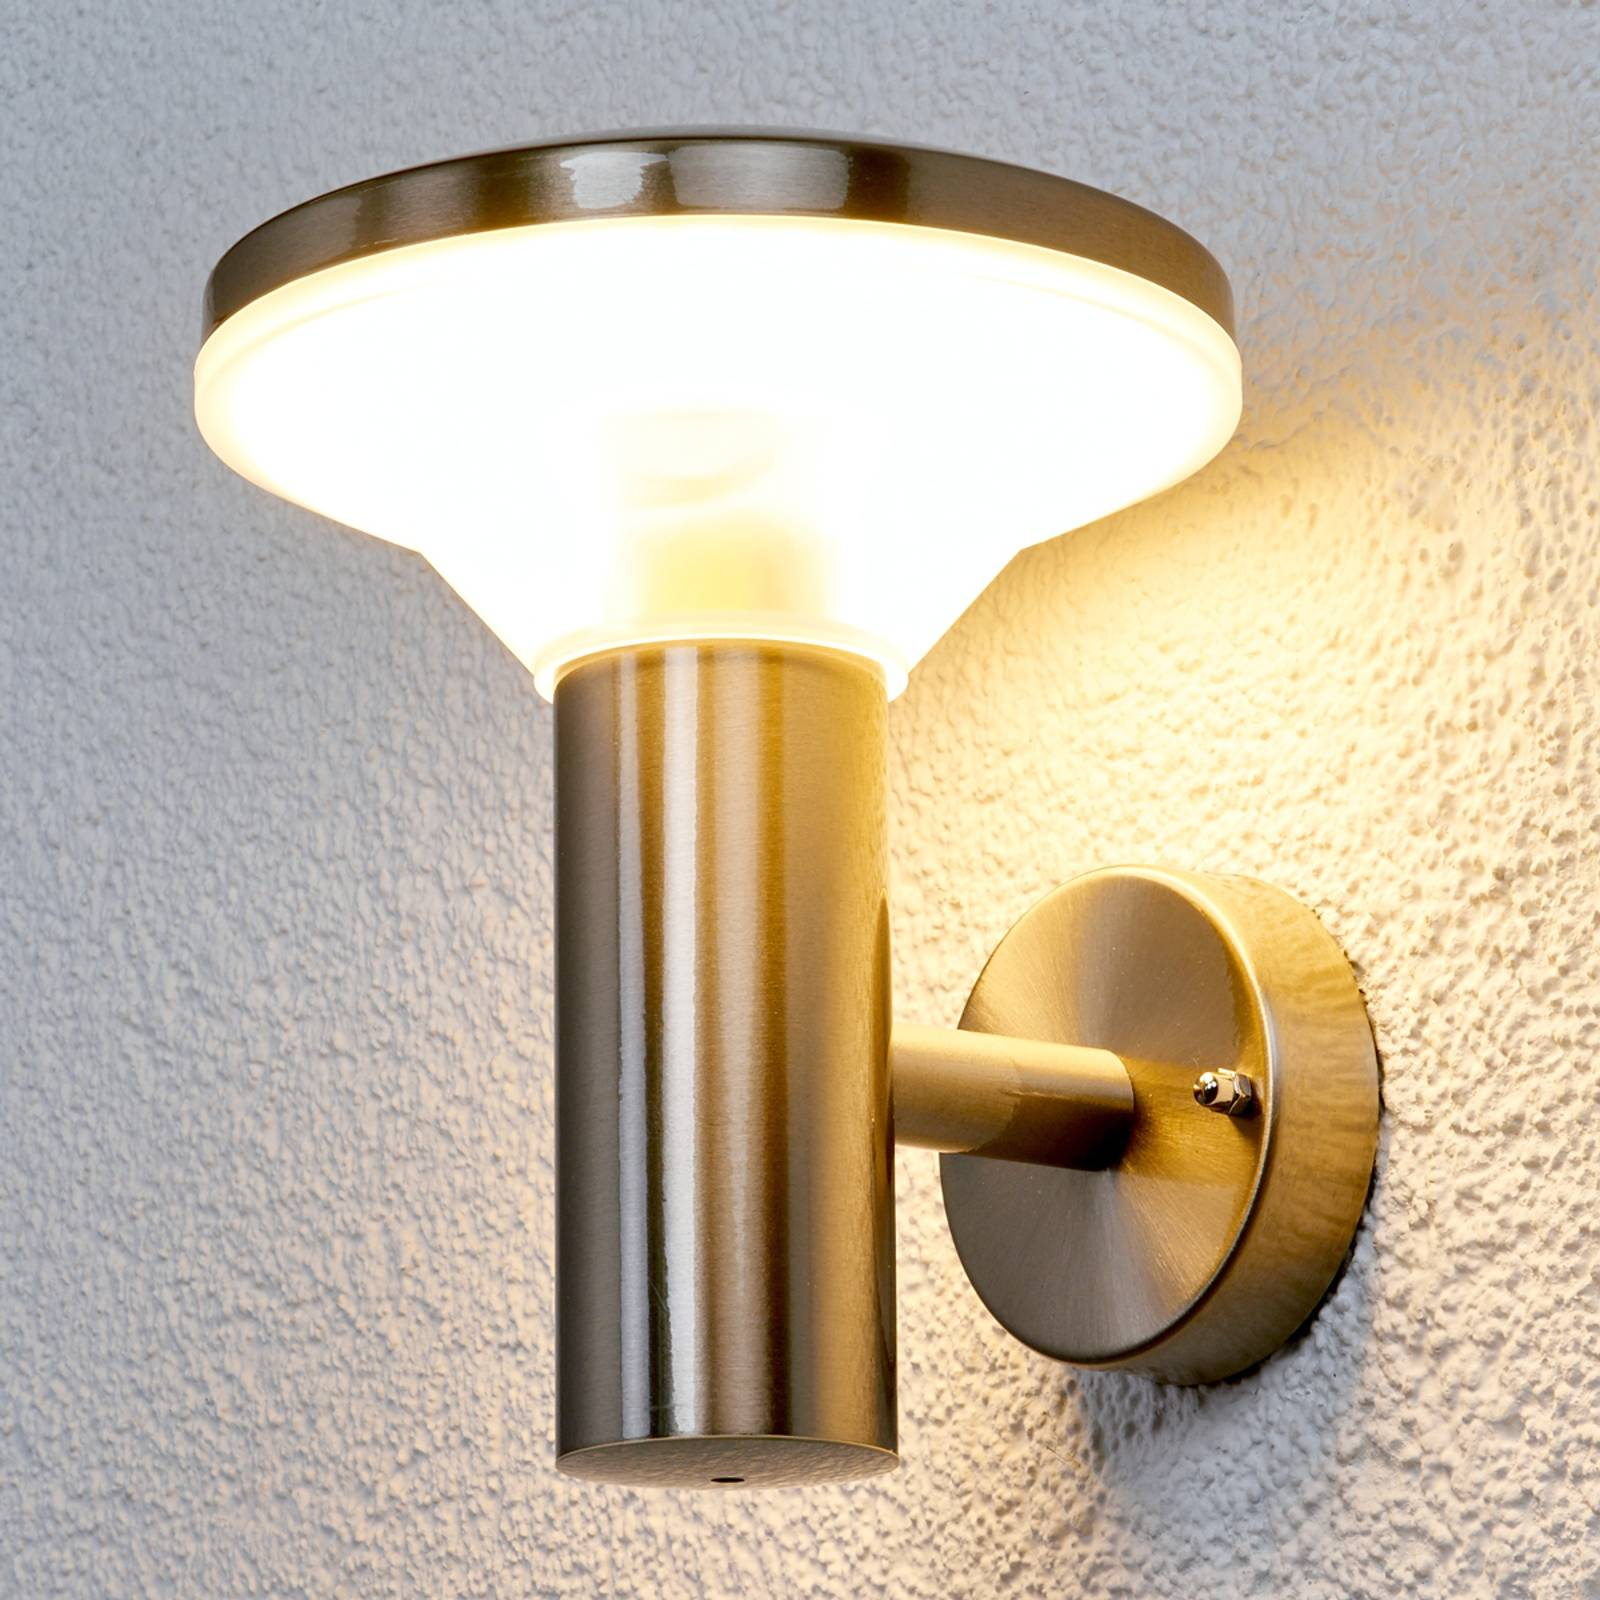 Stainless steel outdoor wall light Jiyan with LED from Lampenwelt.com